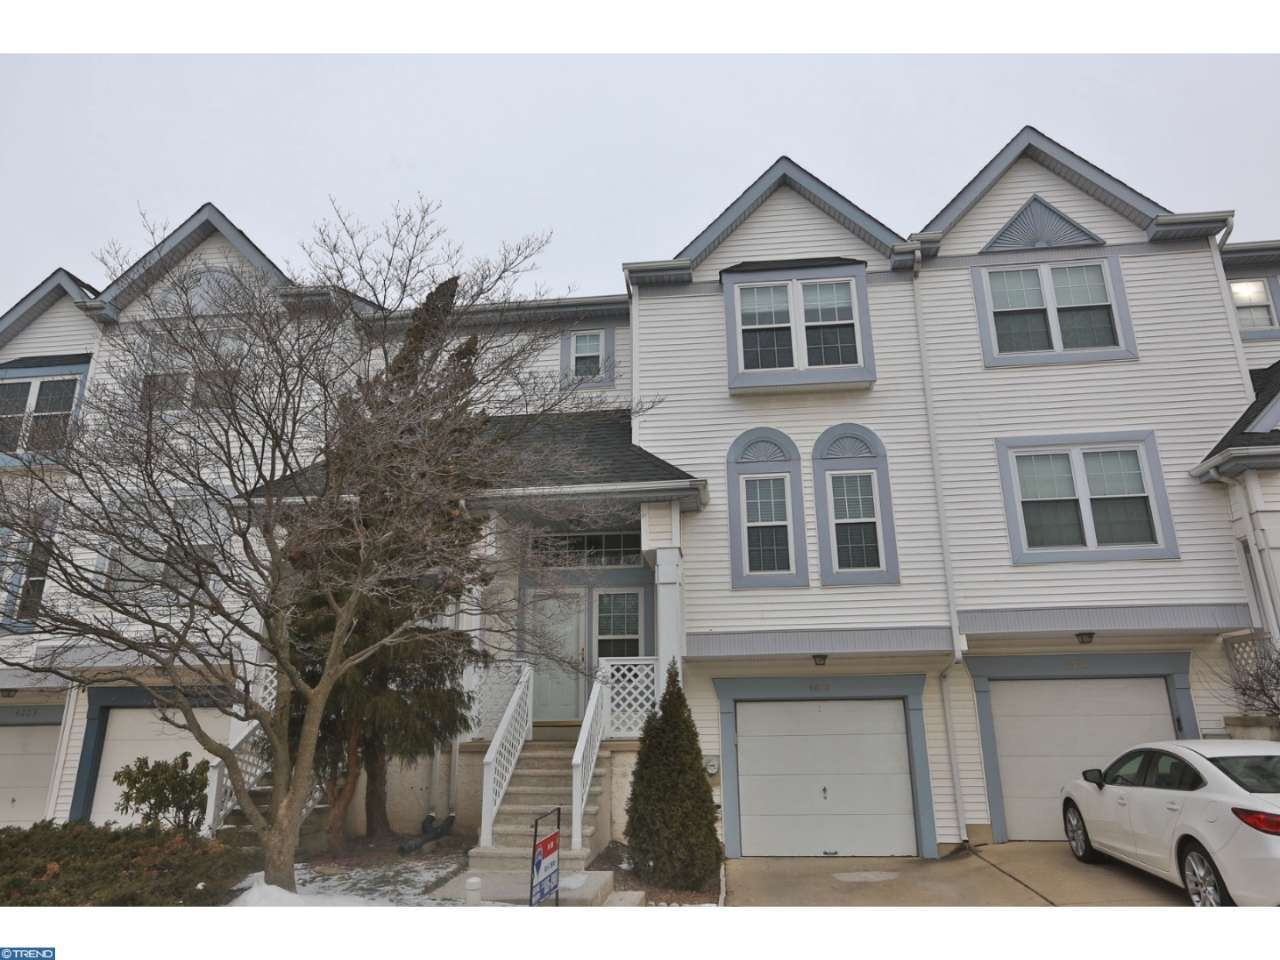 4205 Quaker Court, North Wales, PA 19454